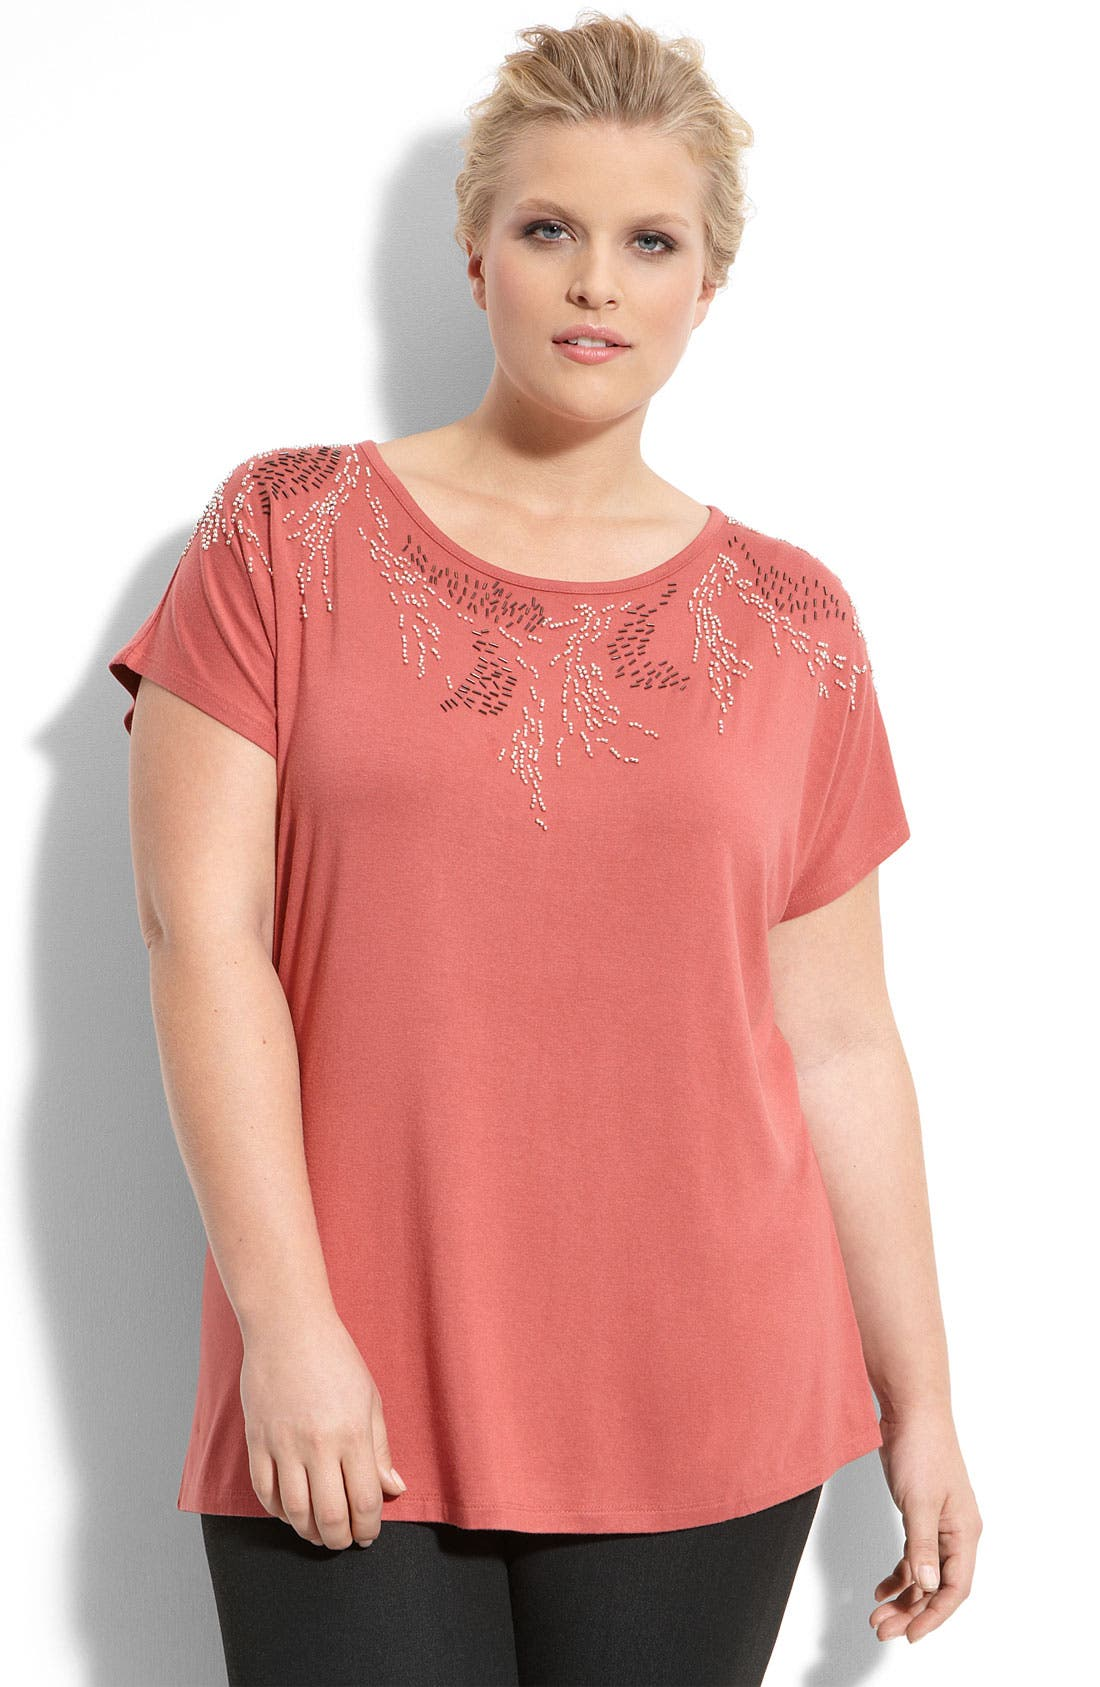 Alternate Image 1 Selected - Sejour Beaded Scoop Neck Tee (Plus)